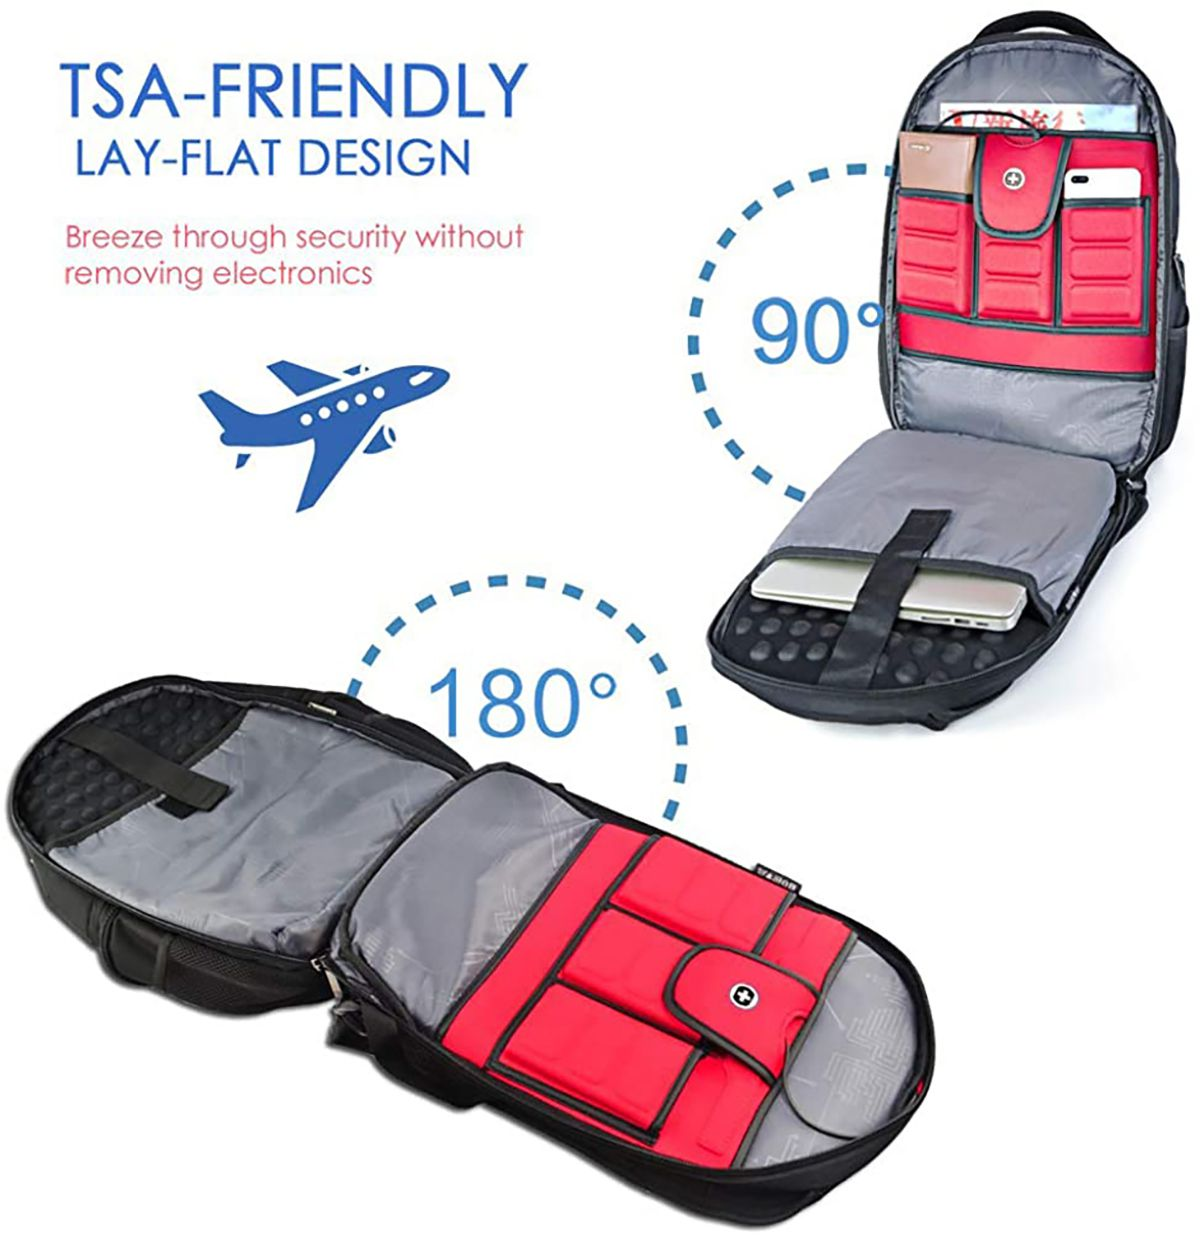 The Swissdigital Circuit Business Travel Backpack is TSA compliant.